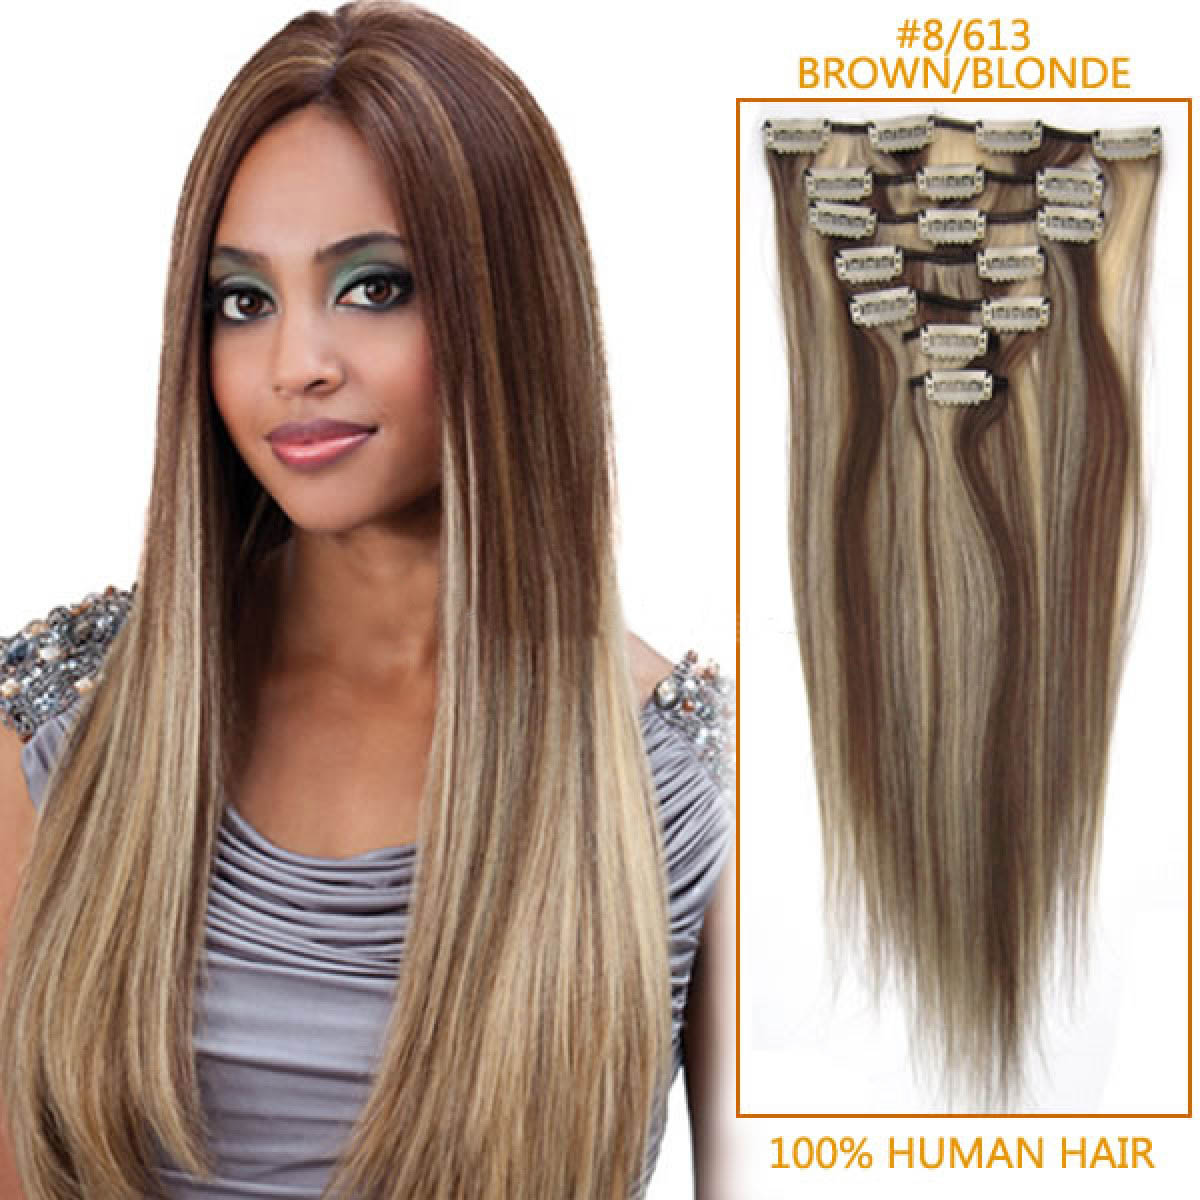 Inch 8613 brownblonde clip in remy human hair extensions 9pcs 22 inch 8613 brownblonde clip in remy human hair extensions 9pcs pmusecretfo Image collections